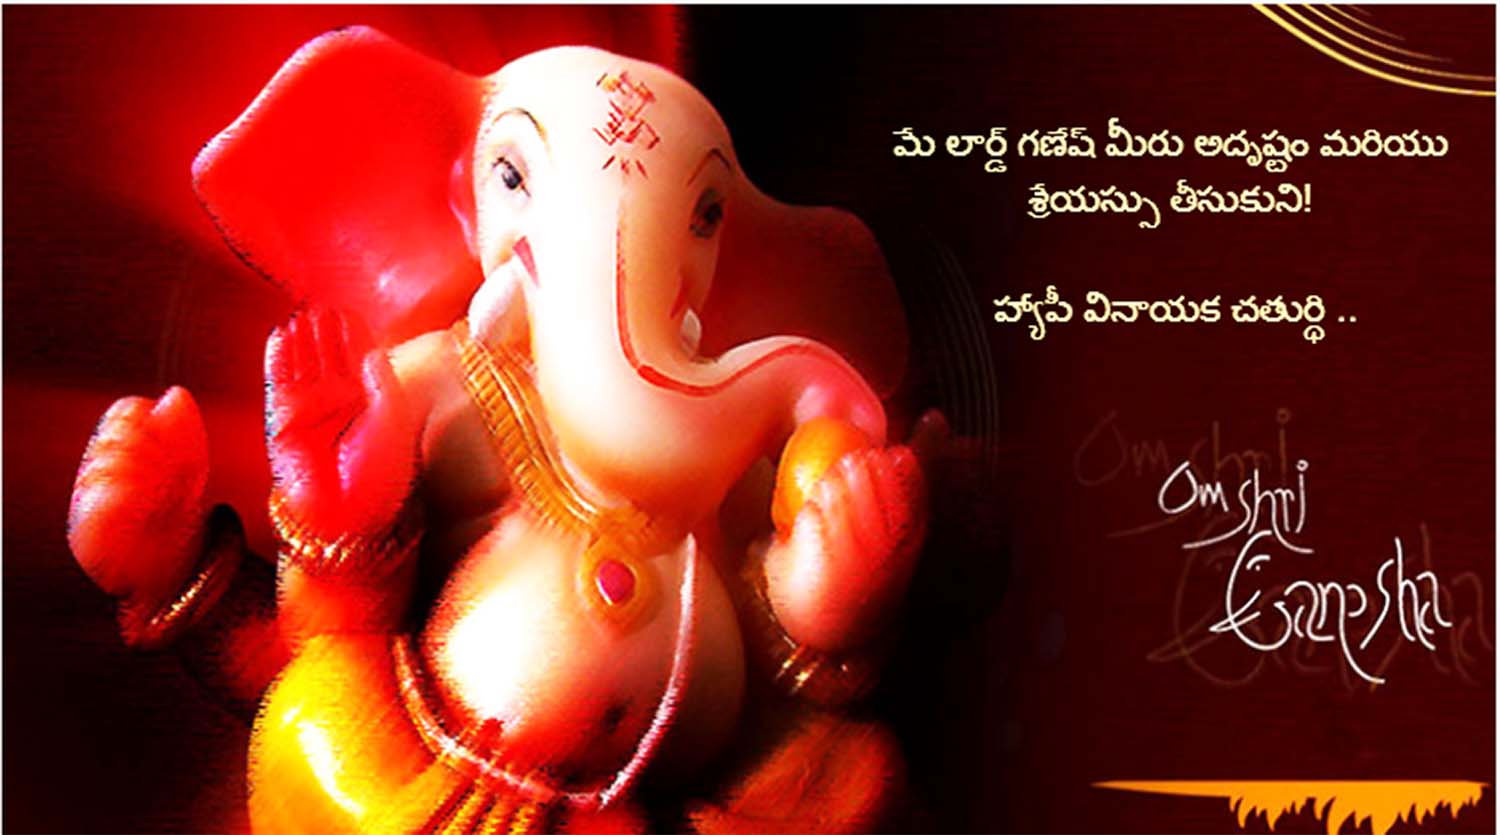 Ganesh Chaturthi 2017 Wishes in Telugu